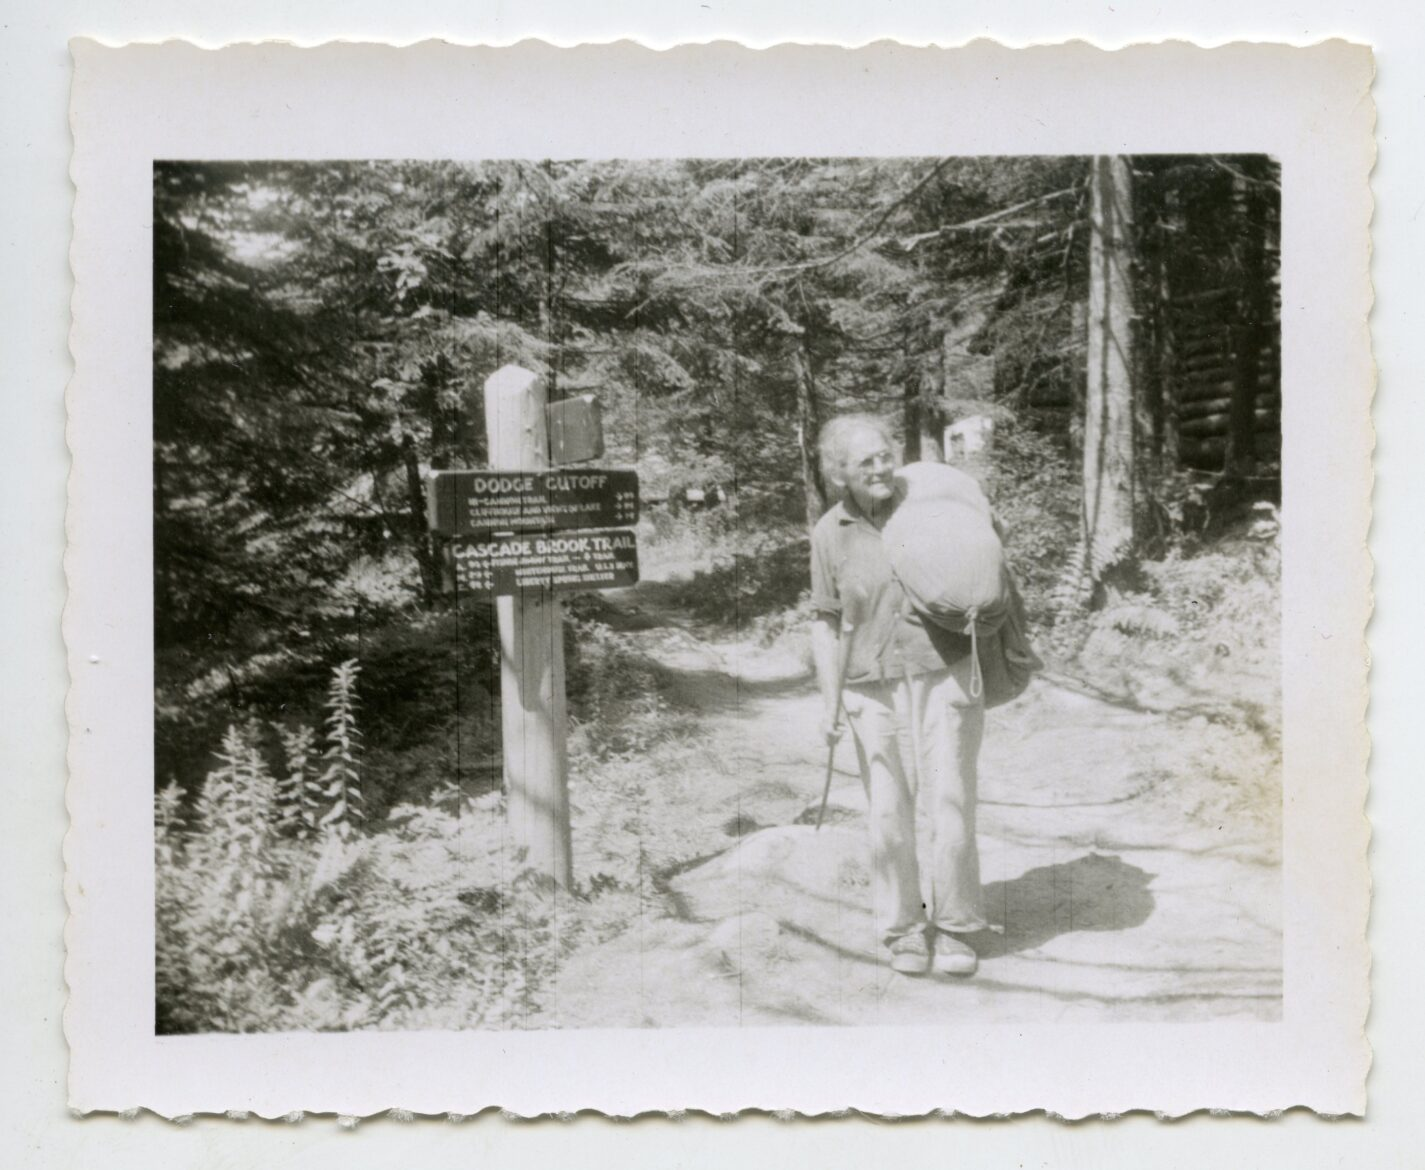 Emma Gatewood at Lonesome Lake on her second A.T. trip in 1957